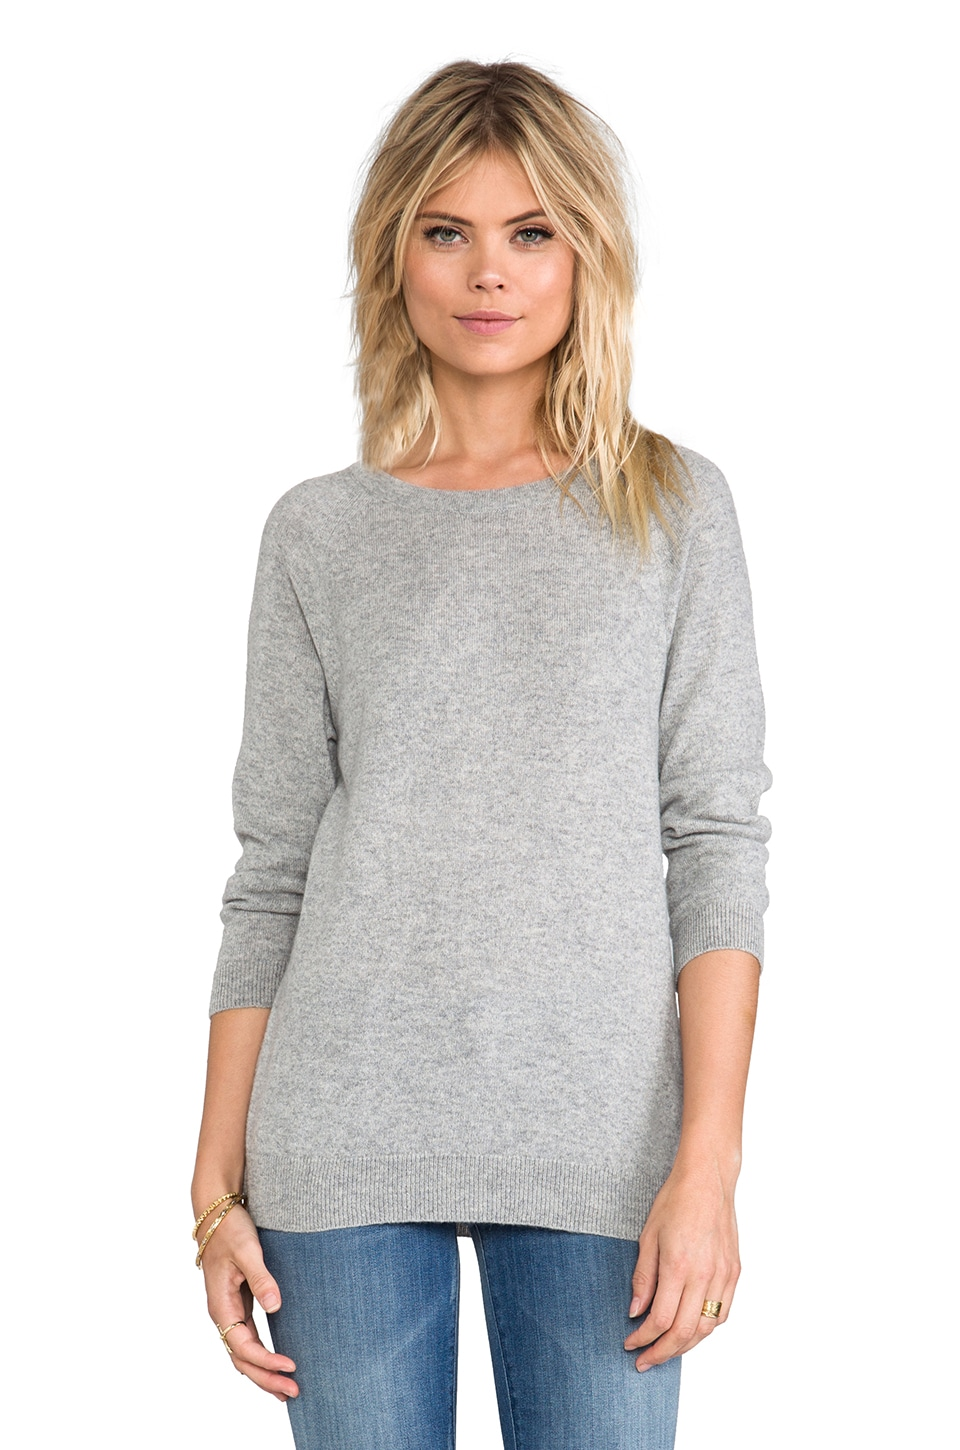 ANINE BING Cashmere Sweater in Grey